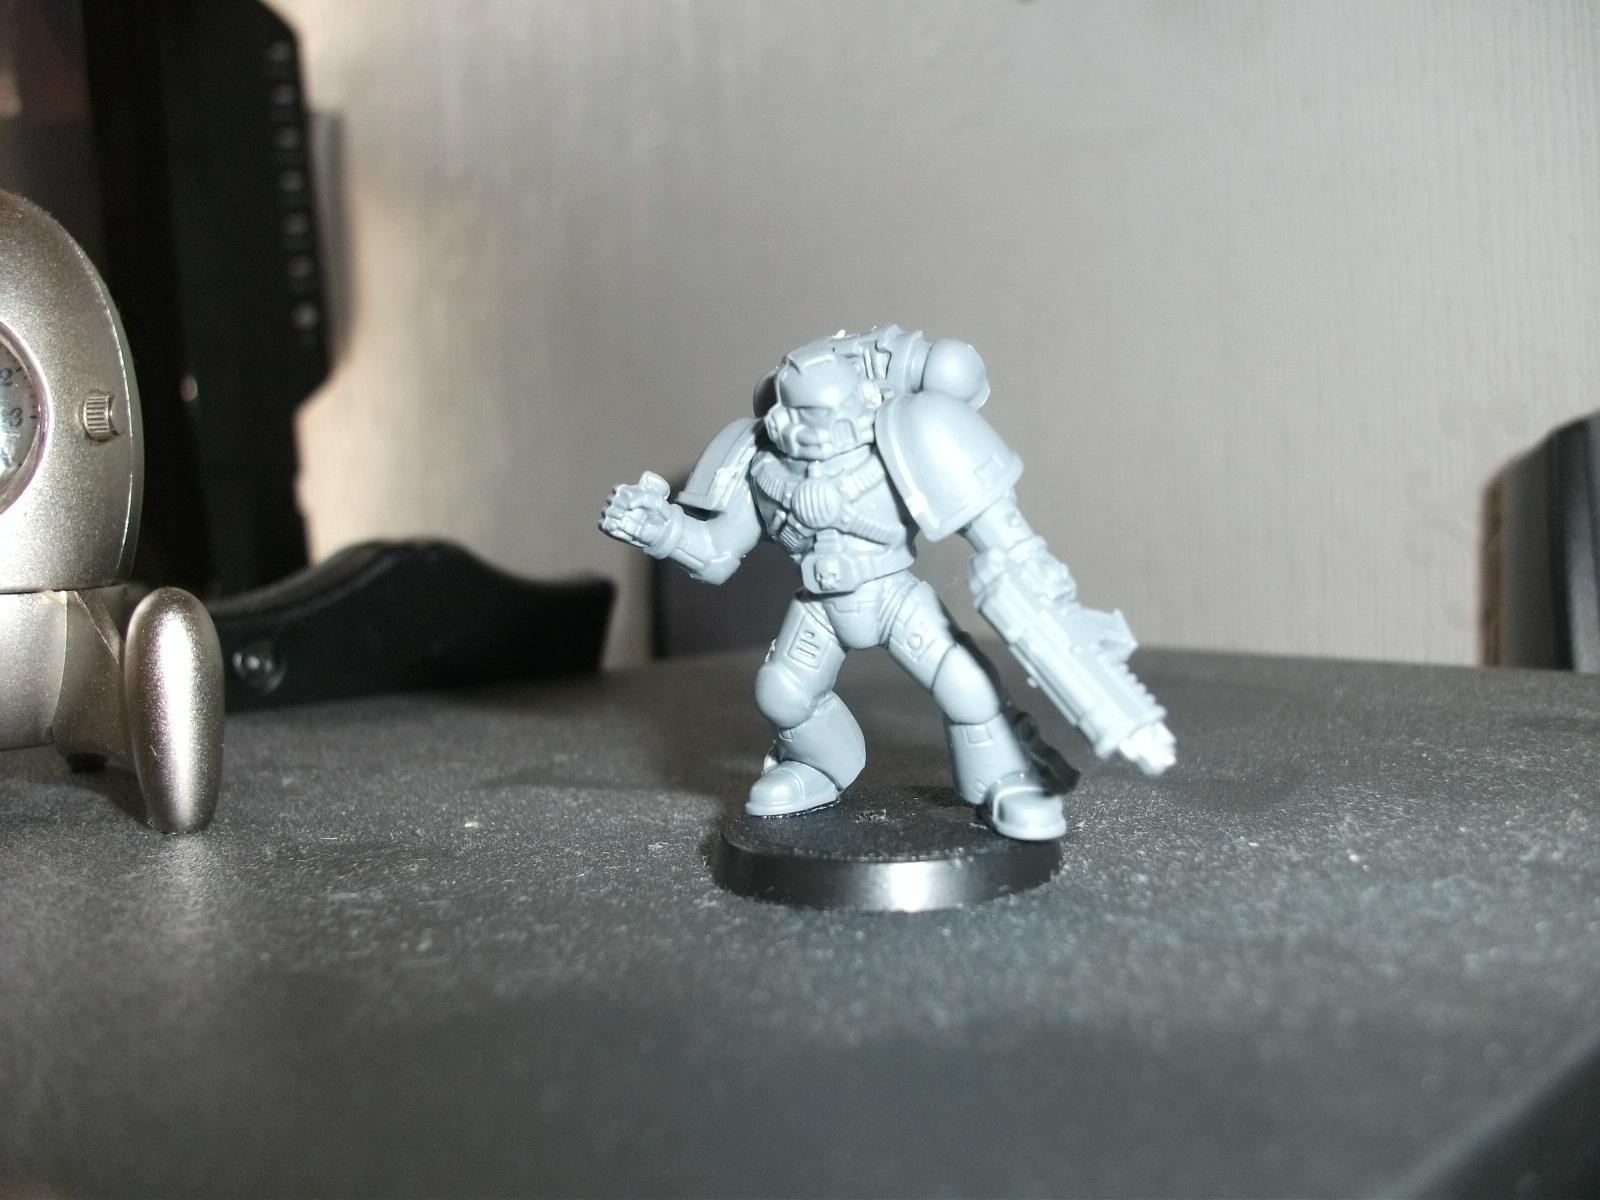 Grenade throwing marine (his pose has changed slightly he's leaning back